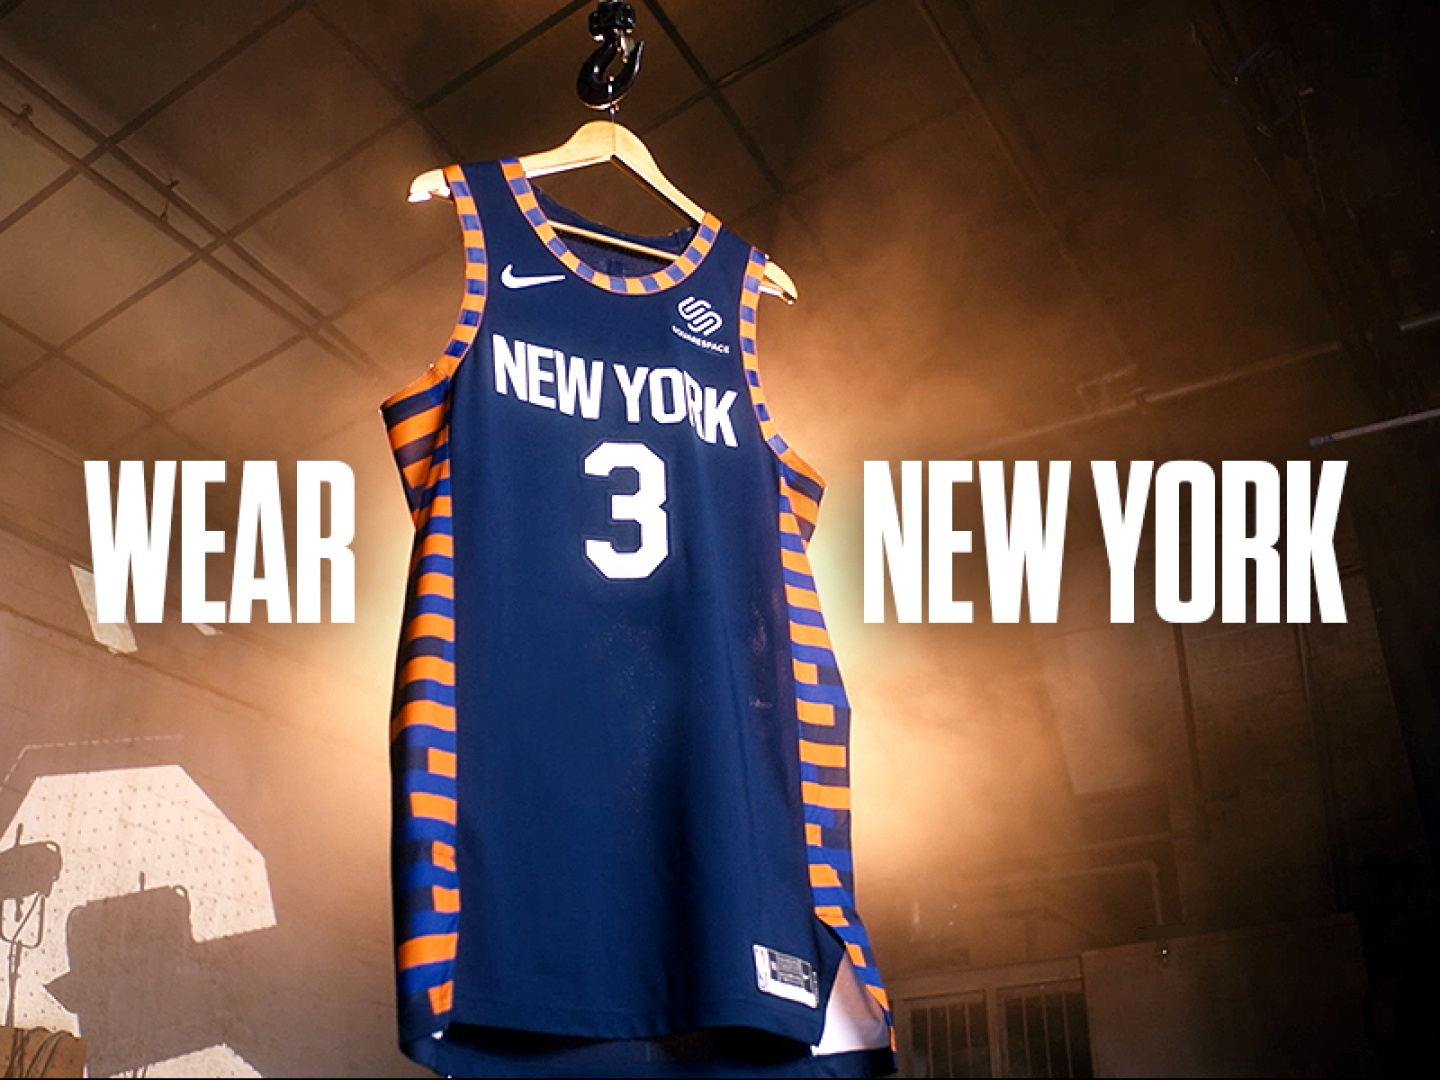 Wear New York Thumbnail